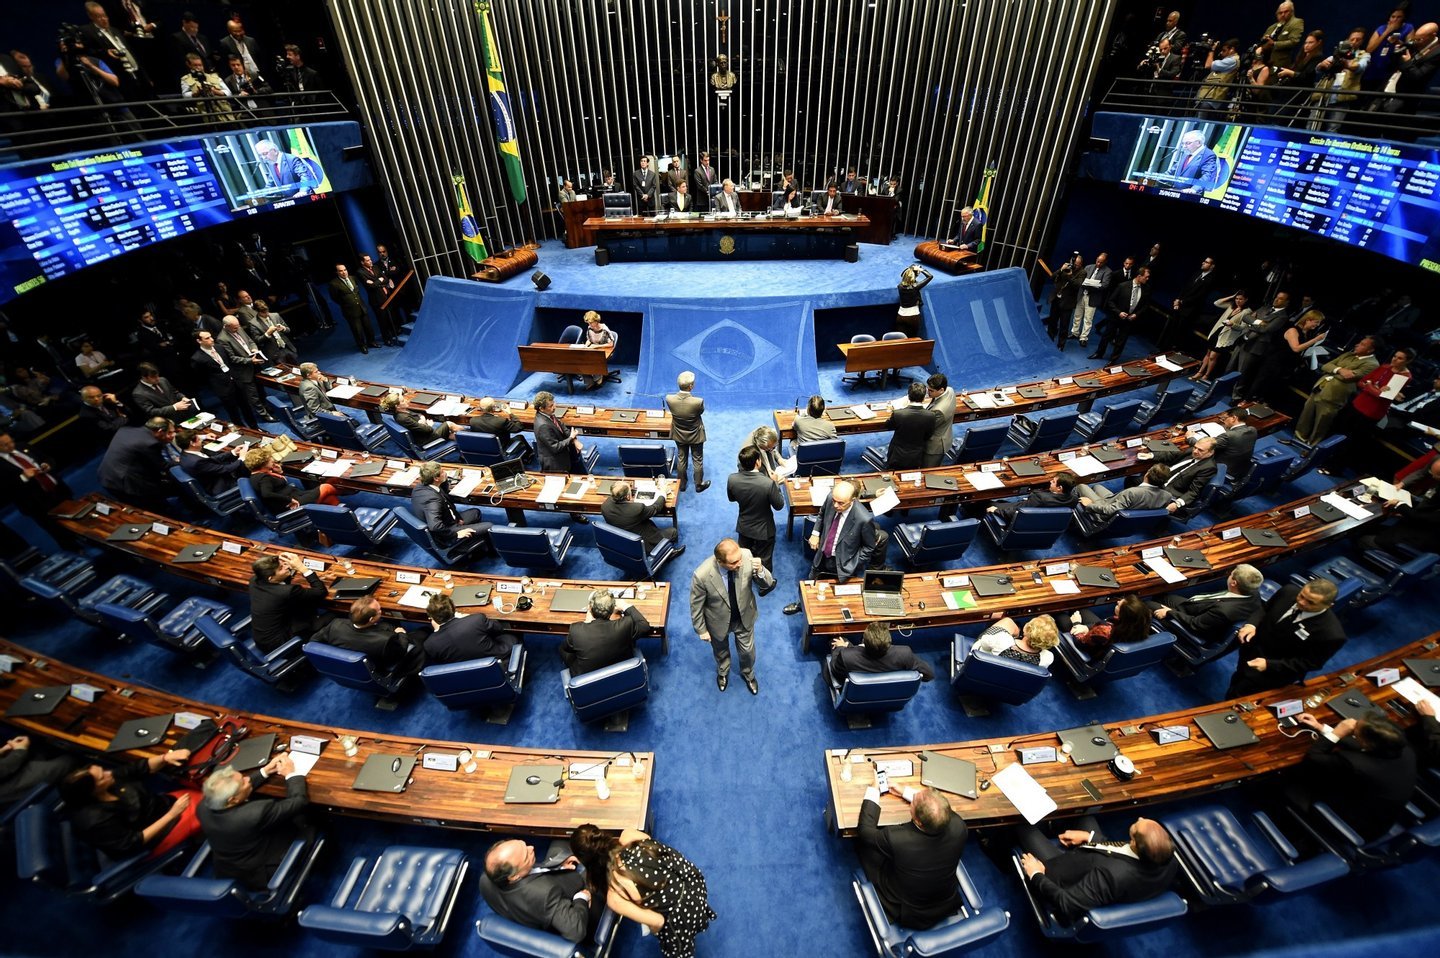 Picture taken during a Brazilian Senate's session to form a committee that will consider whether to impeach President Dilma Rousseff, in Brasilia, on April 25, 2016. Brazil's Senate met Monday to form a committee that will consider whether to impeach Rousseff, who has accused her opponents of mounting a constitutional coup. She is accused of illegal government accounting maneuvers, but says she has not committed an impeachment-worthy crime. The Senate committee -- comprising 21 of the 81 senators -- was to debate Rousseff's fate for up to 10 working days before making a recommendation to the full upper house. / AFP / EVARISTO SA (Photo credit should read EVARISTO SA/AFP/Getty Images)